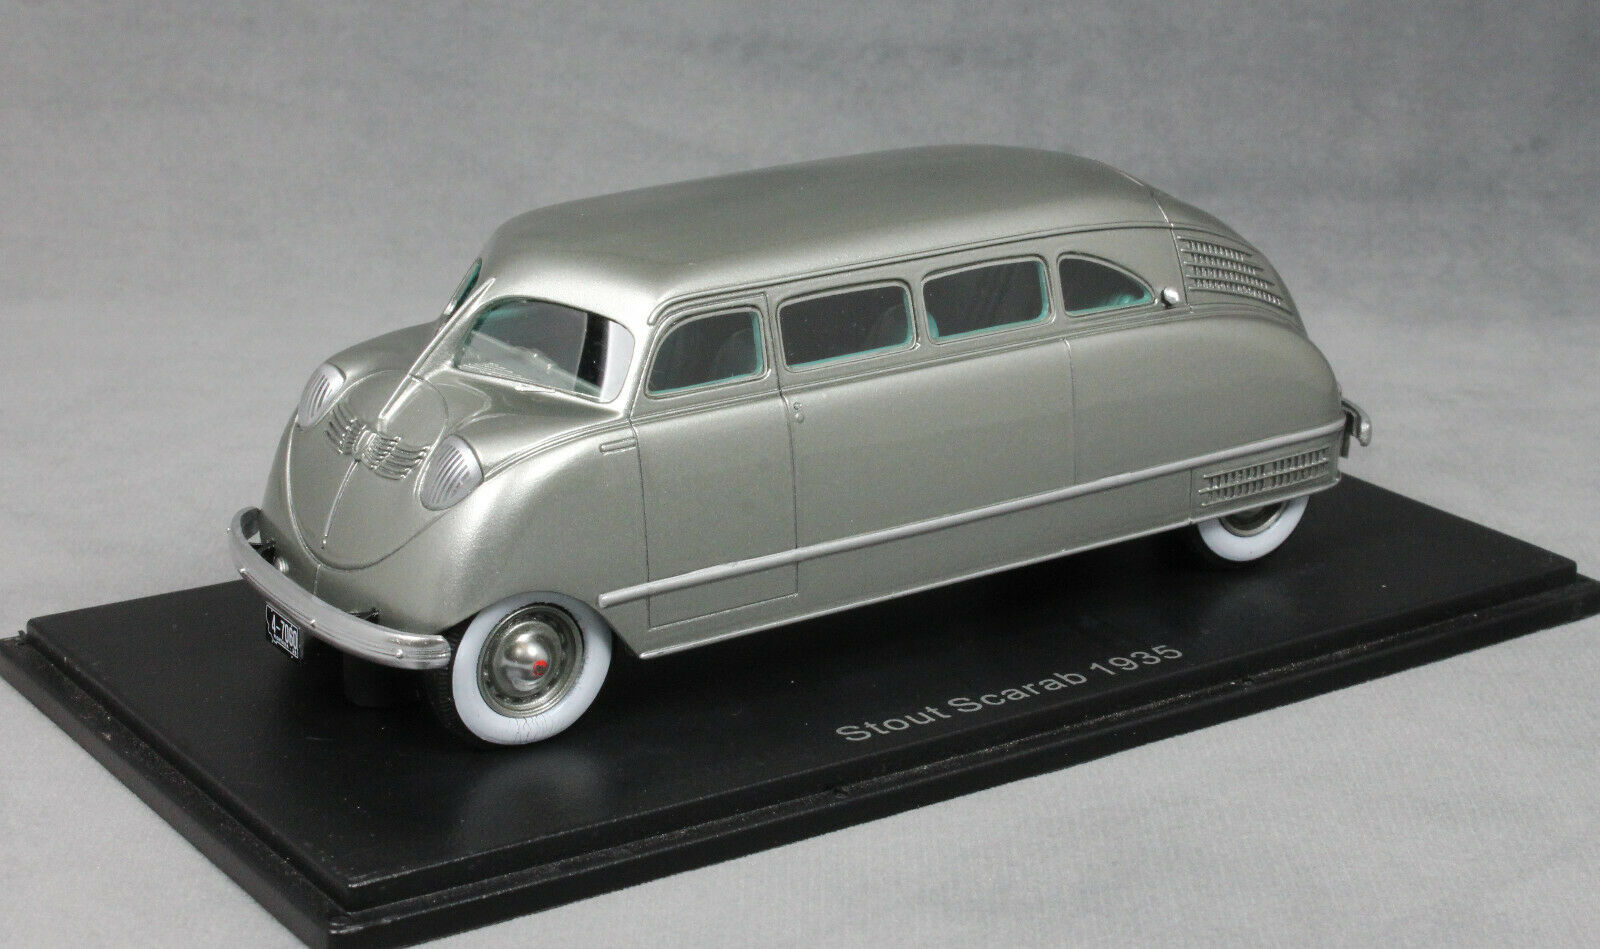 NEO Models STOUT SCARAB in argento 1935 47060 1/43 NUOVO